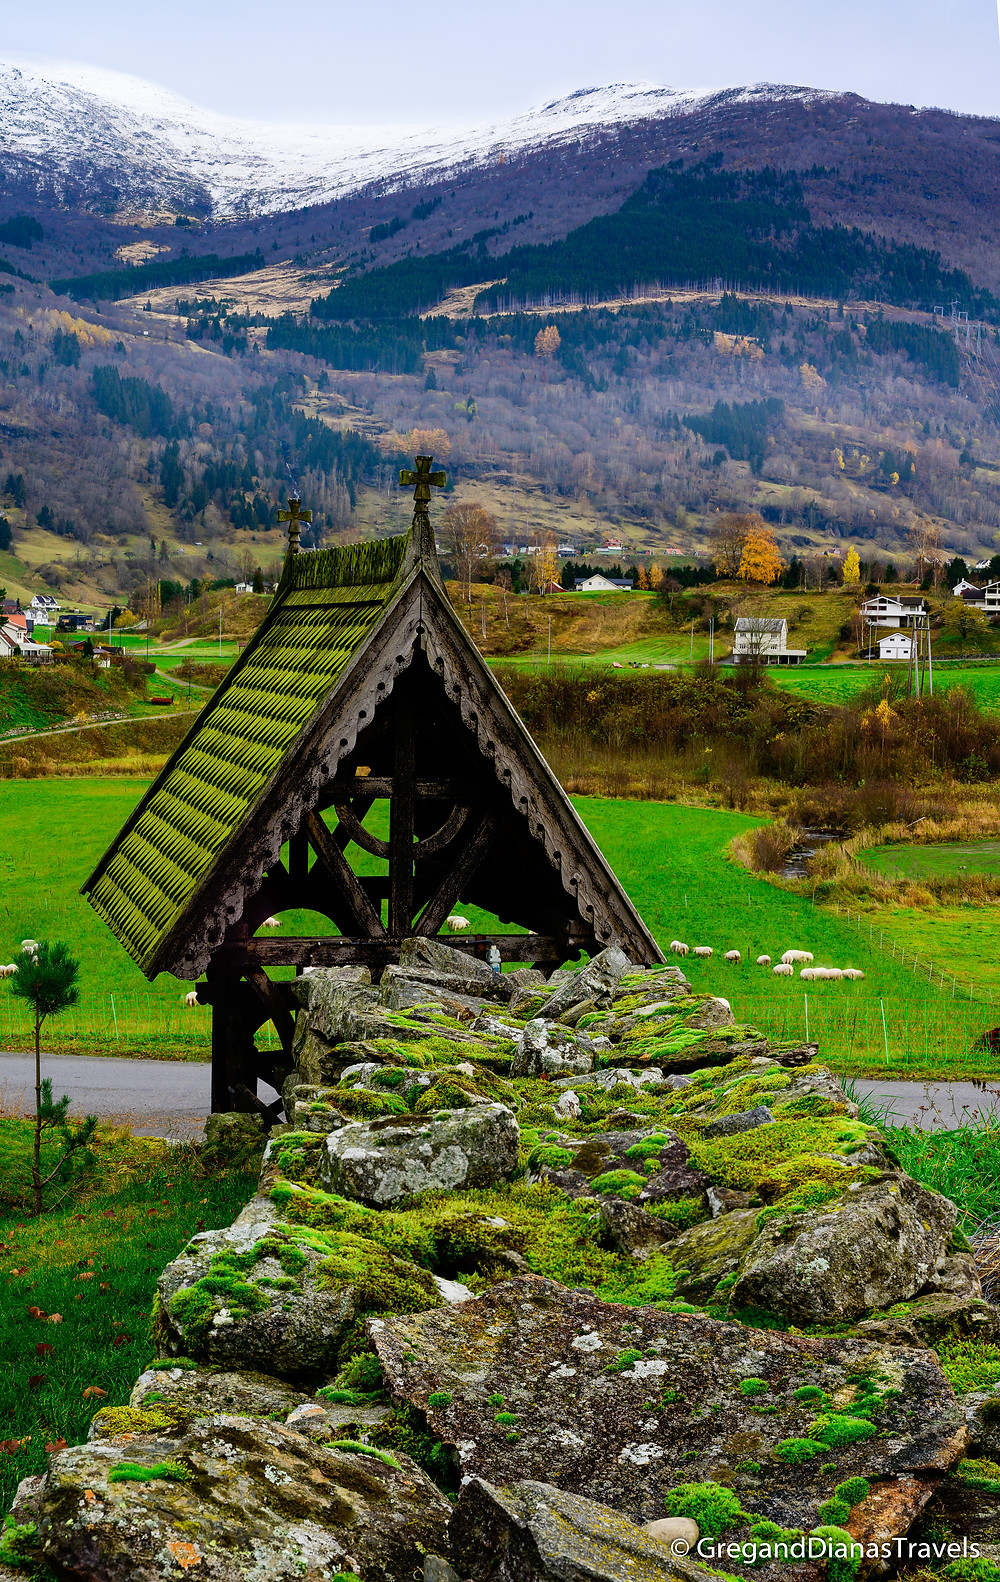 Mossy rock fence, Hopperstad Stave Church surrounding, Vikoyri municipality, Travel to Norway, Norwegian stave churches